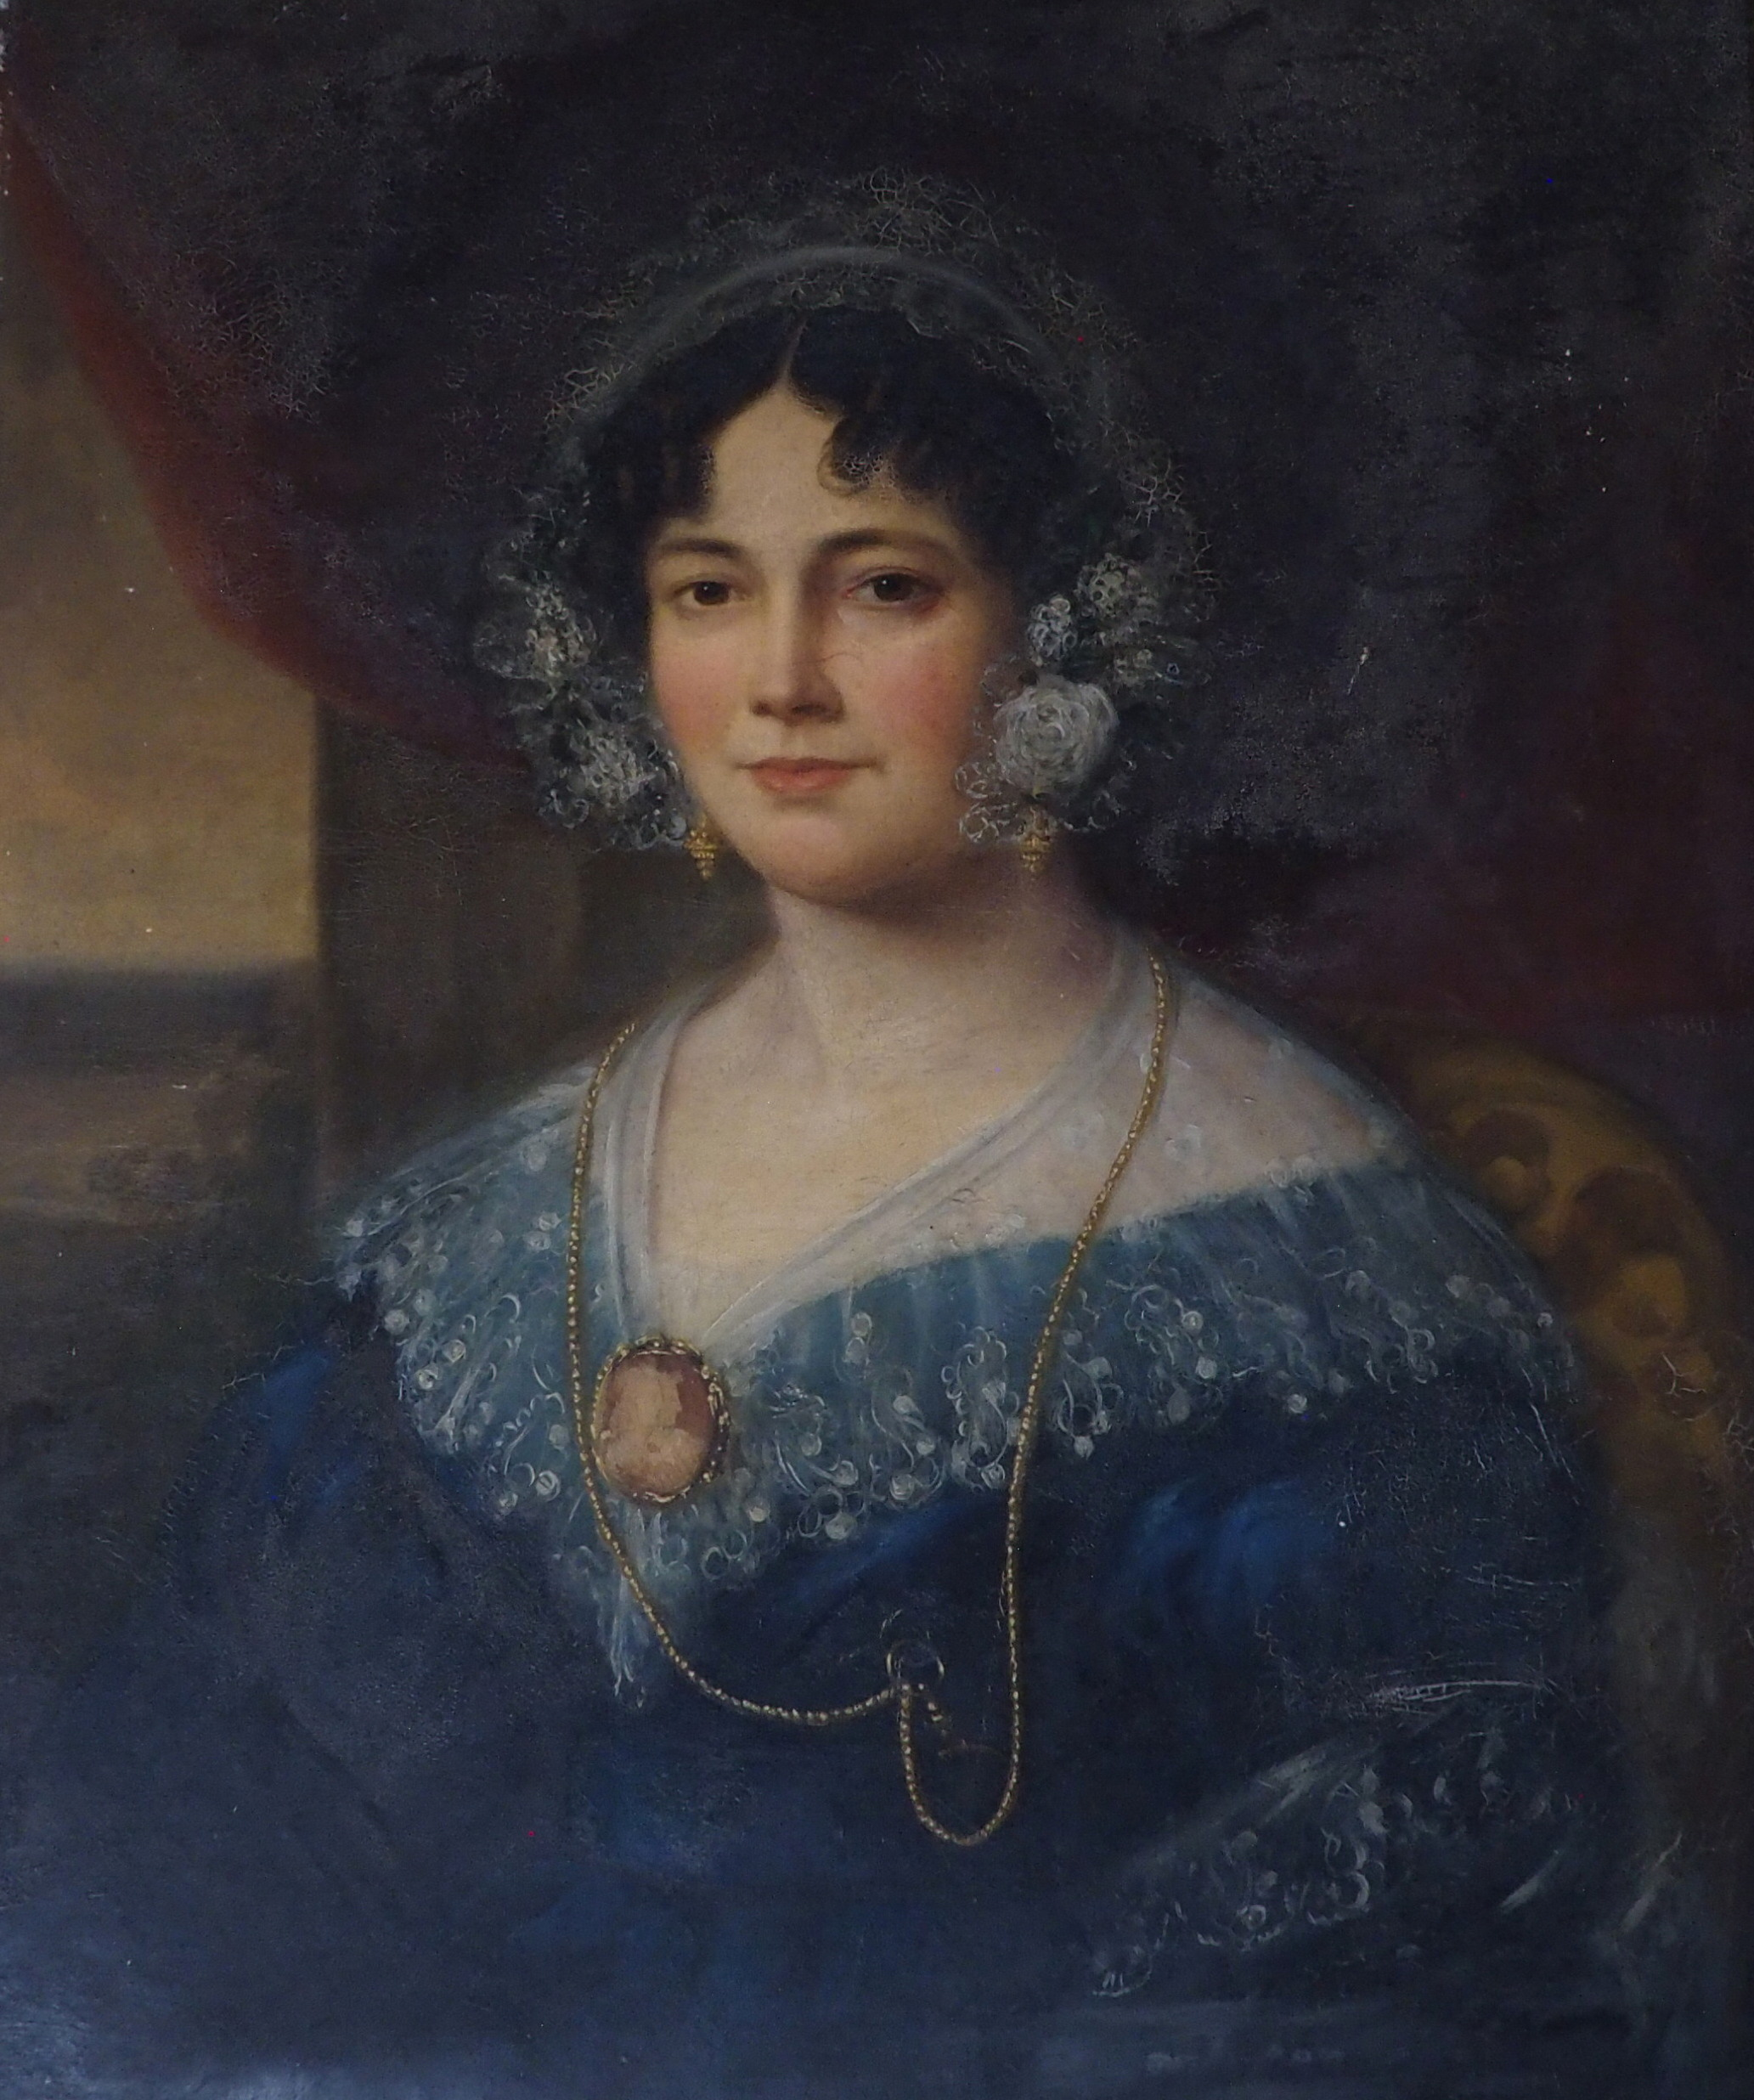 BRITISH SCHOOL (19TH CENTURY) PORTRAIT OF A LADY IN A BLUE DRESS AND LACE CAP Oil on canvas, 76 x